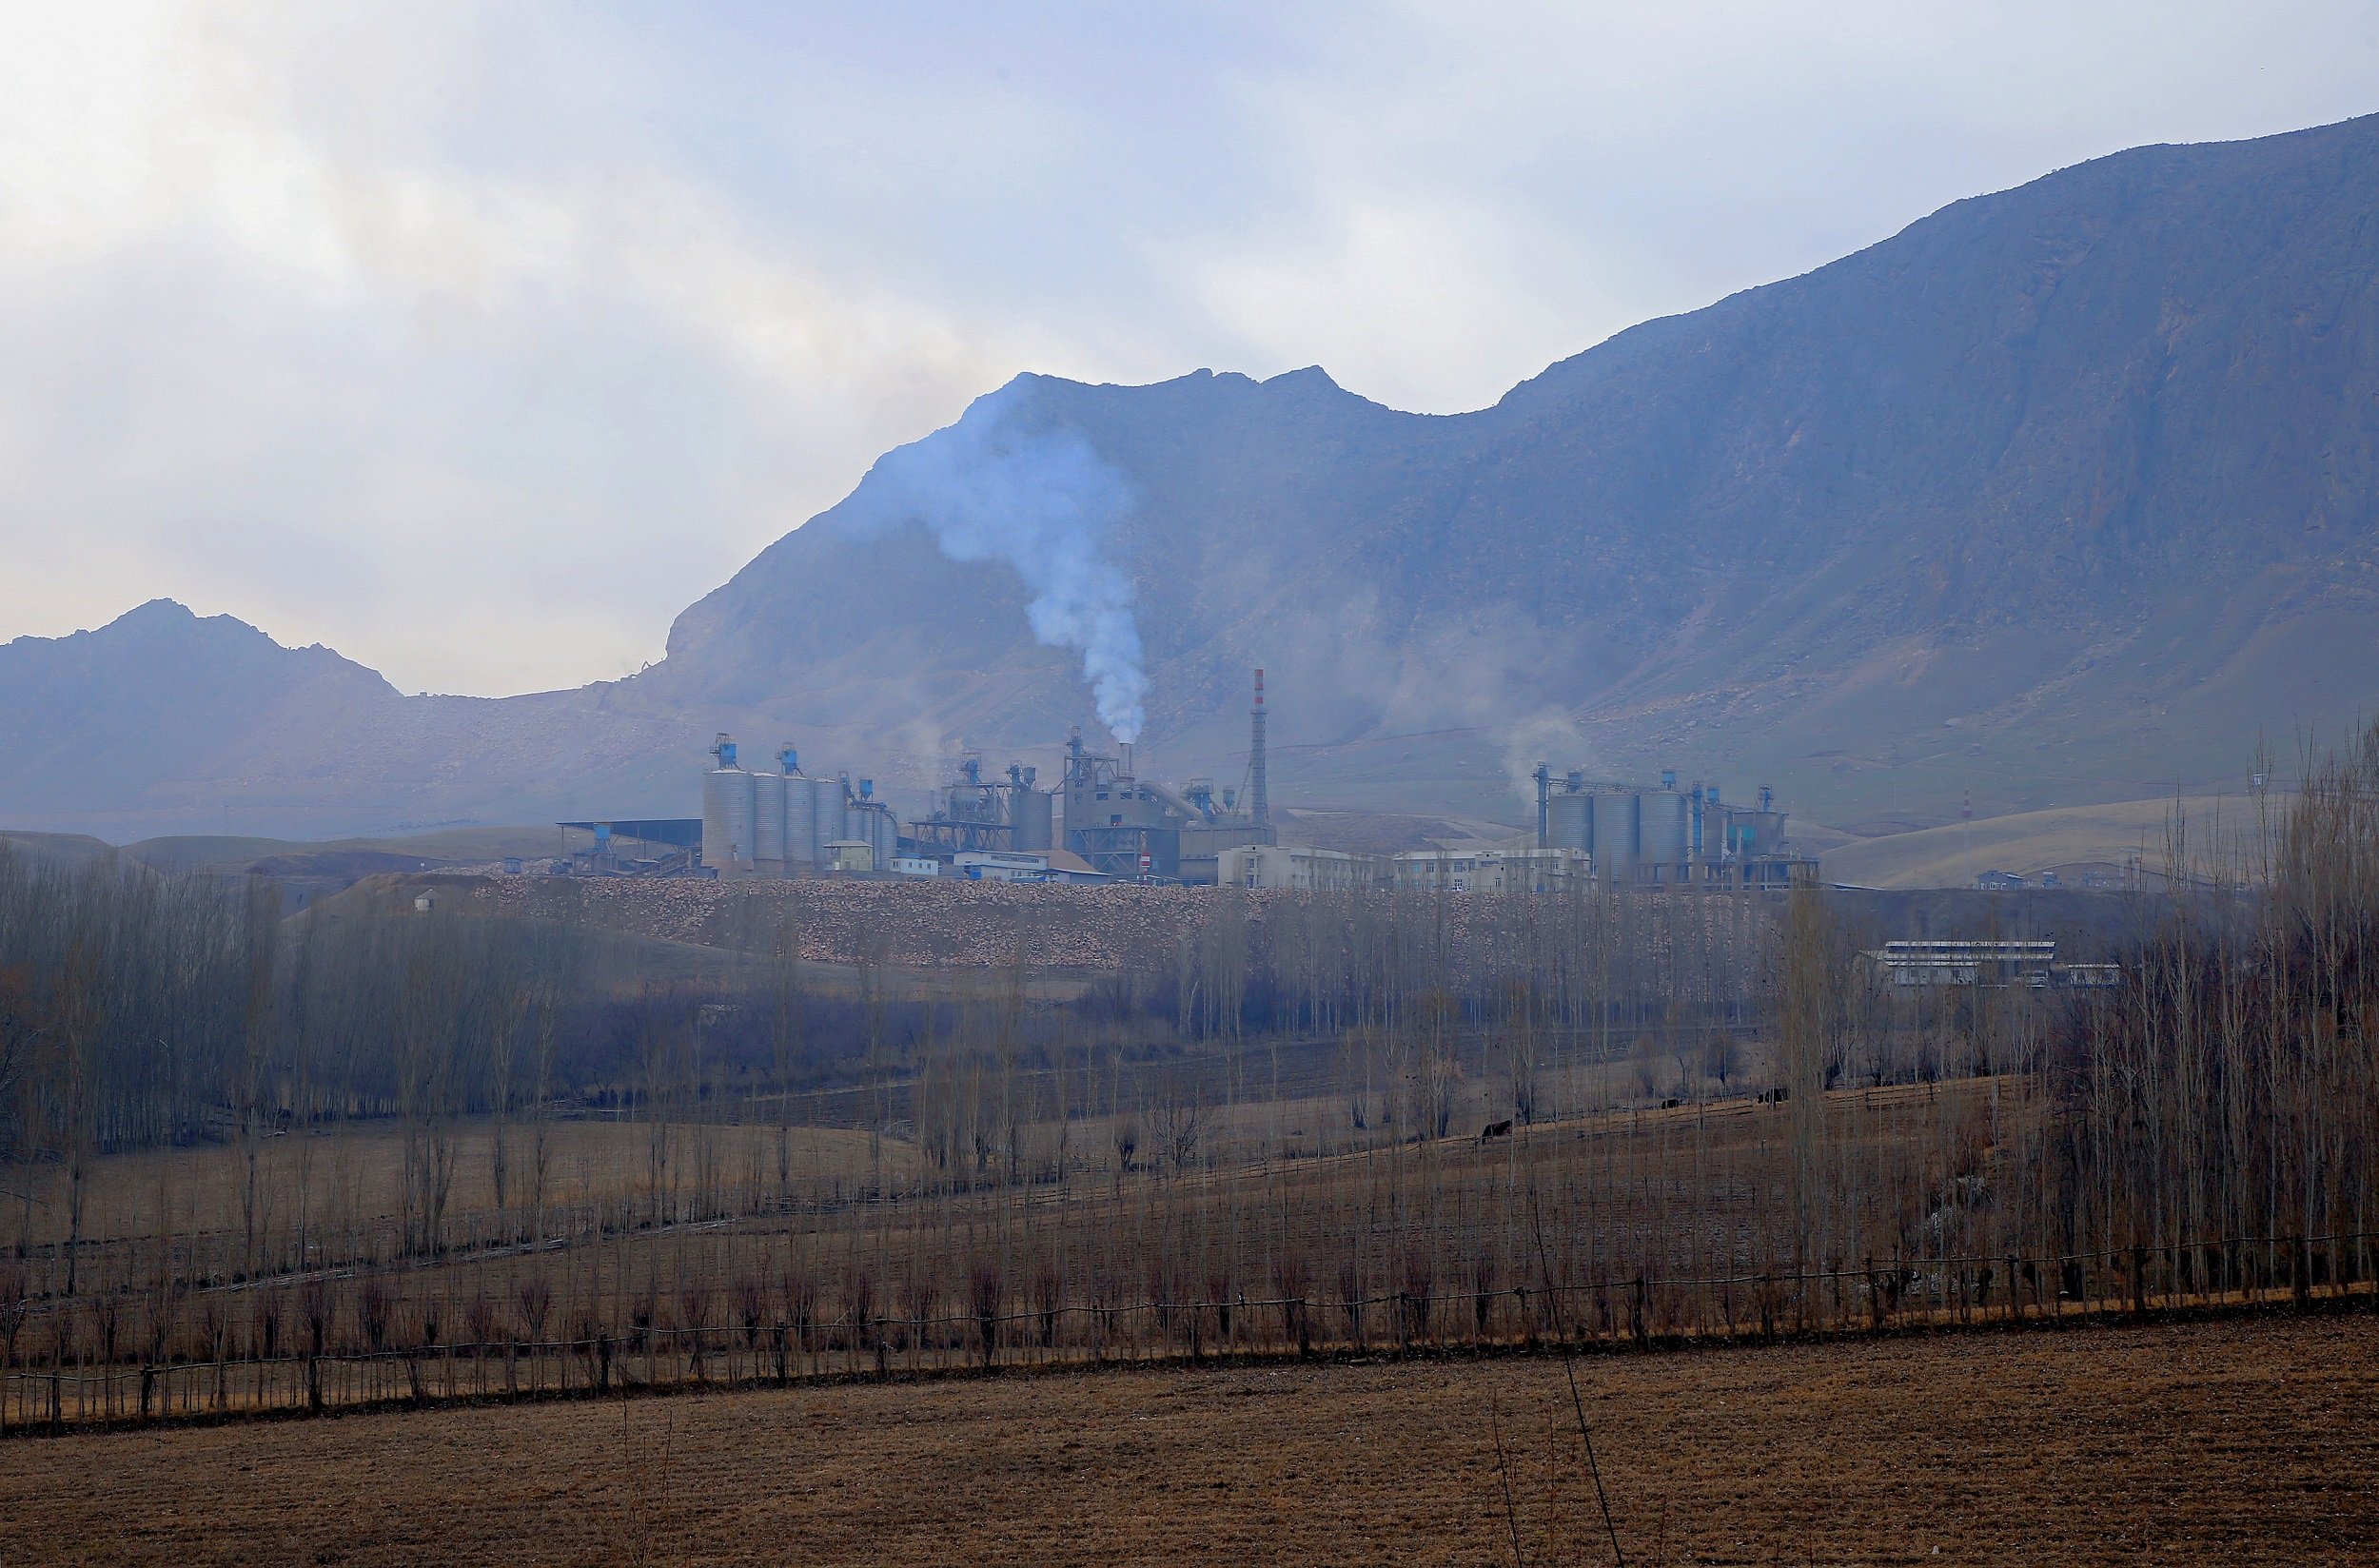 Local residents say that poisonous substances are emitted from the Sinzhi-Pirim cement plant into the air, and get into soil and water, harming the local population's health. (Image courtesy of the author)